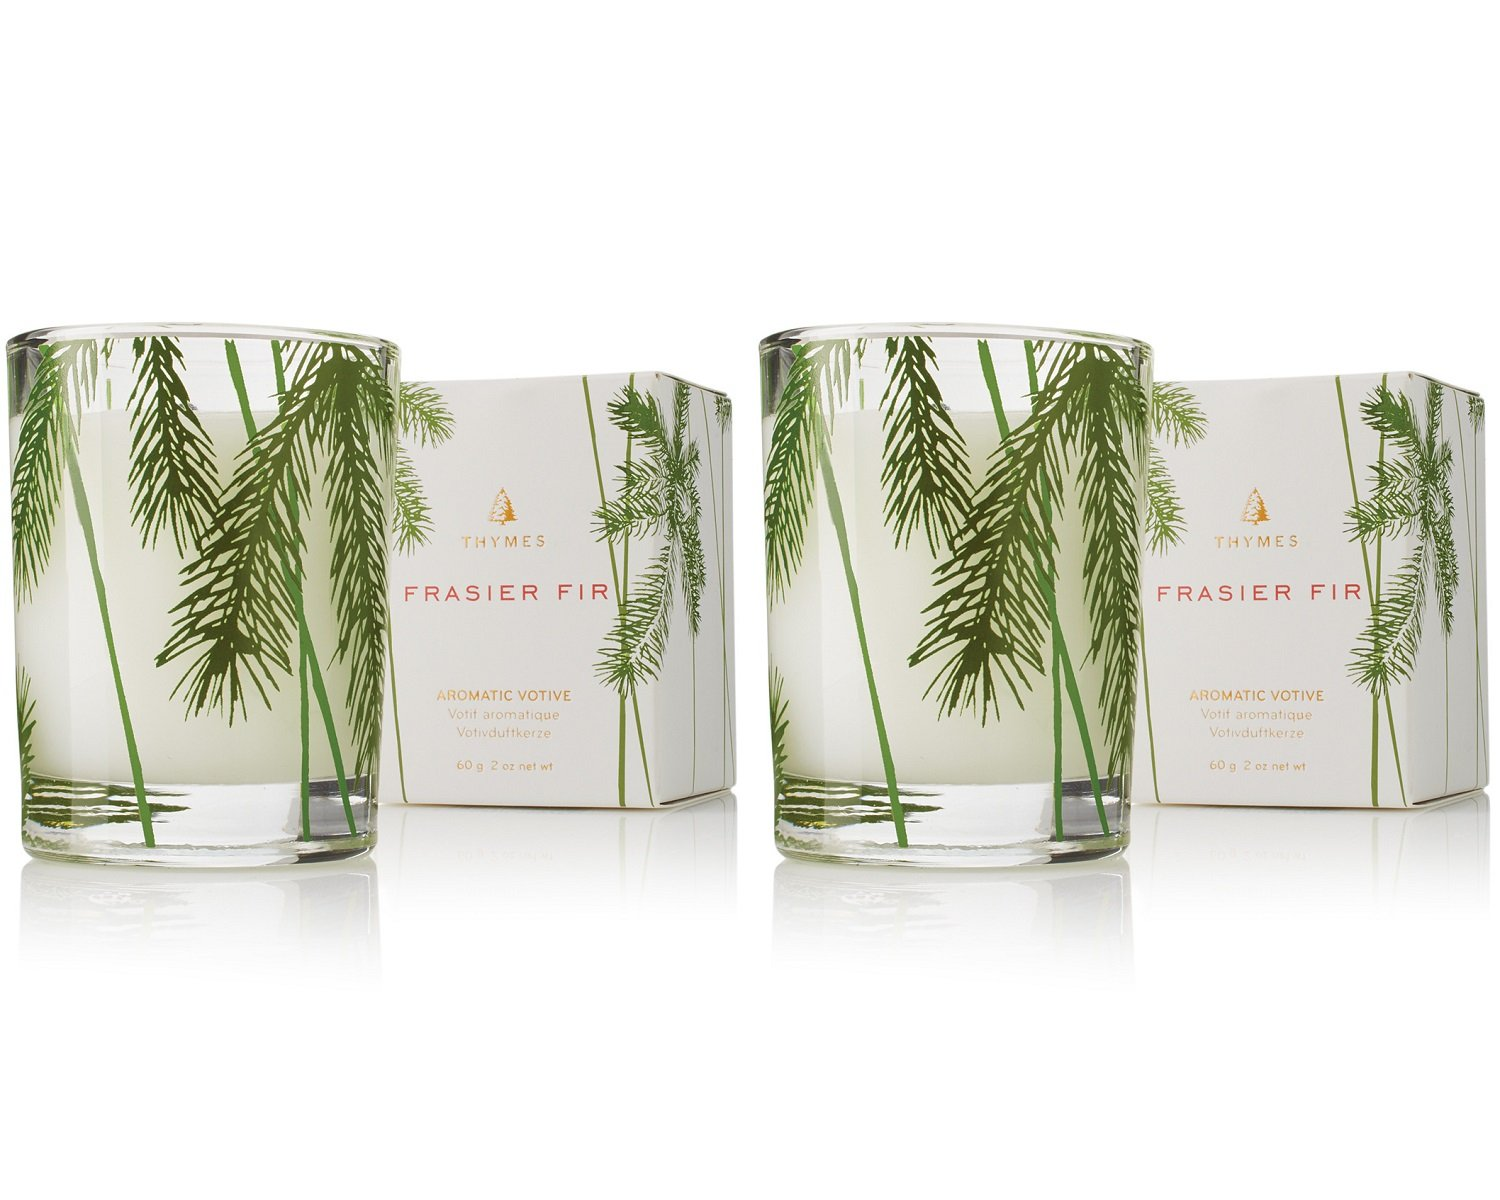 Thymes - Fragrant Frasier Fir Votive Candle with 15-Hour Burn Time - 2 Ounces, Set of 2